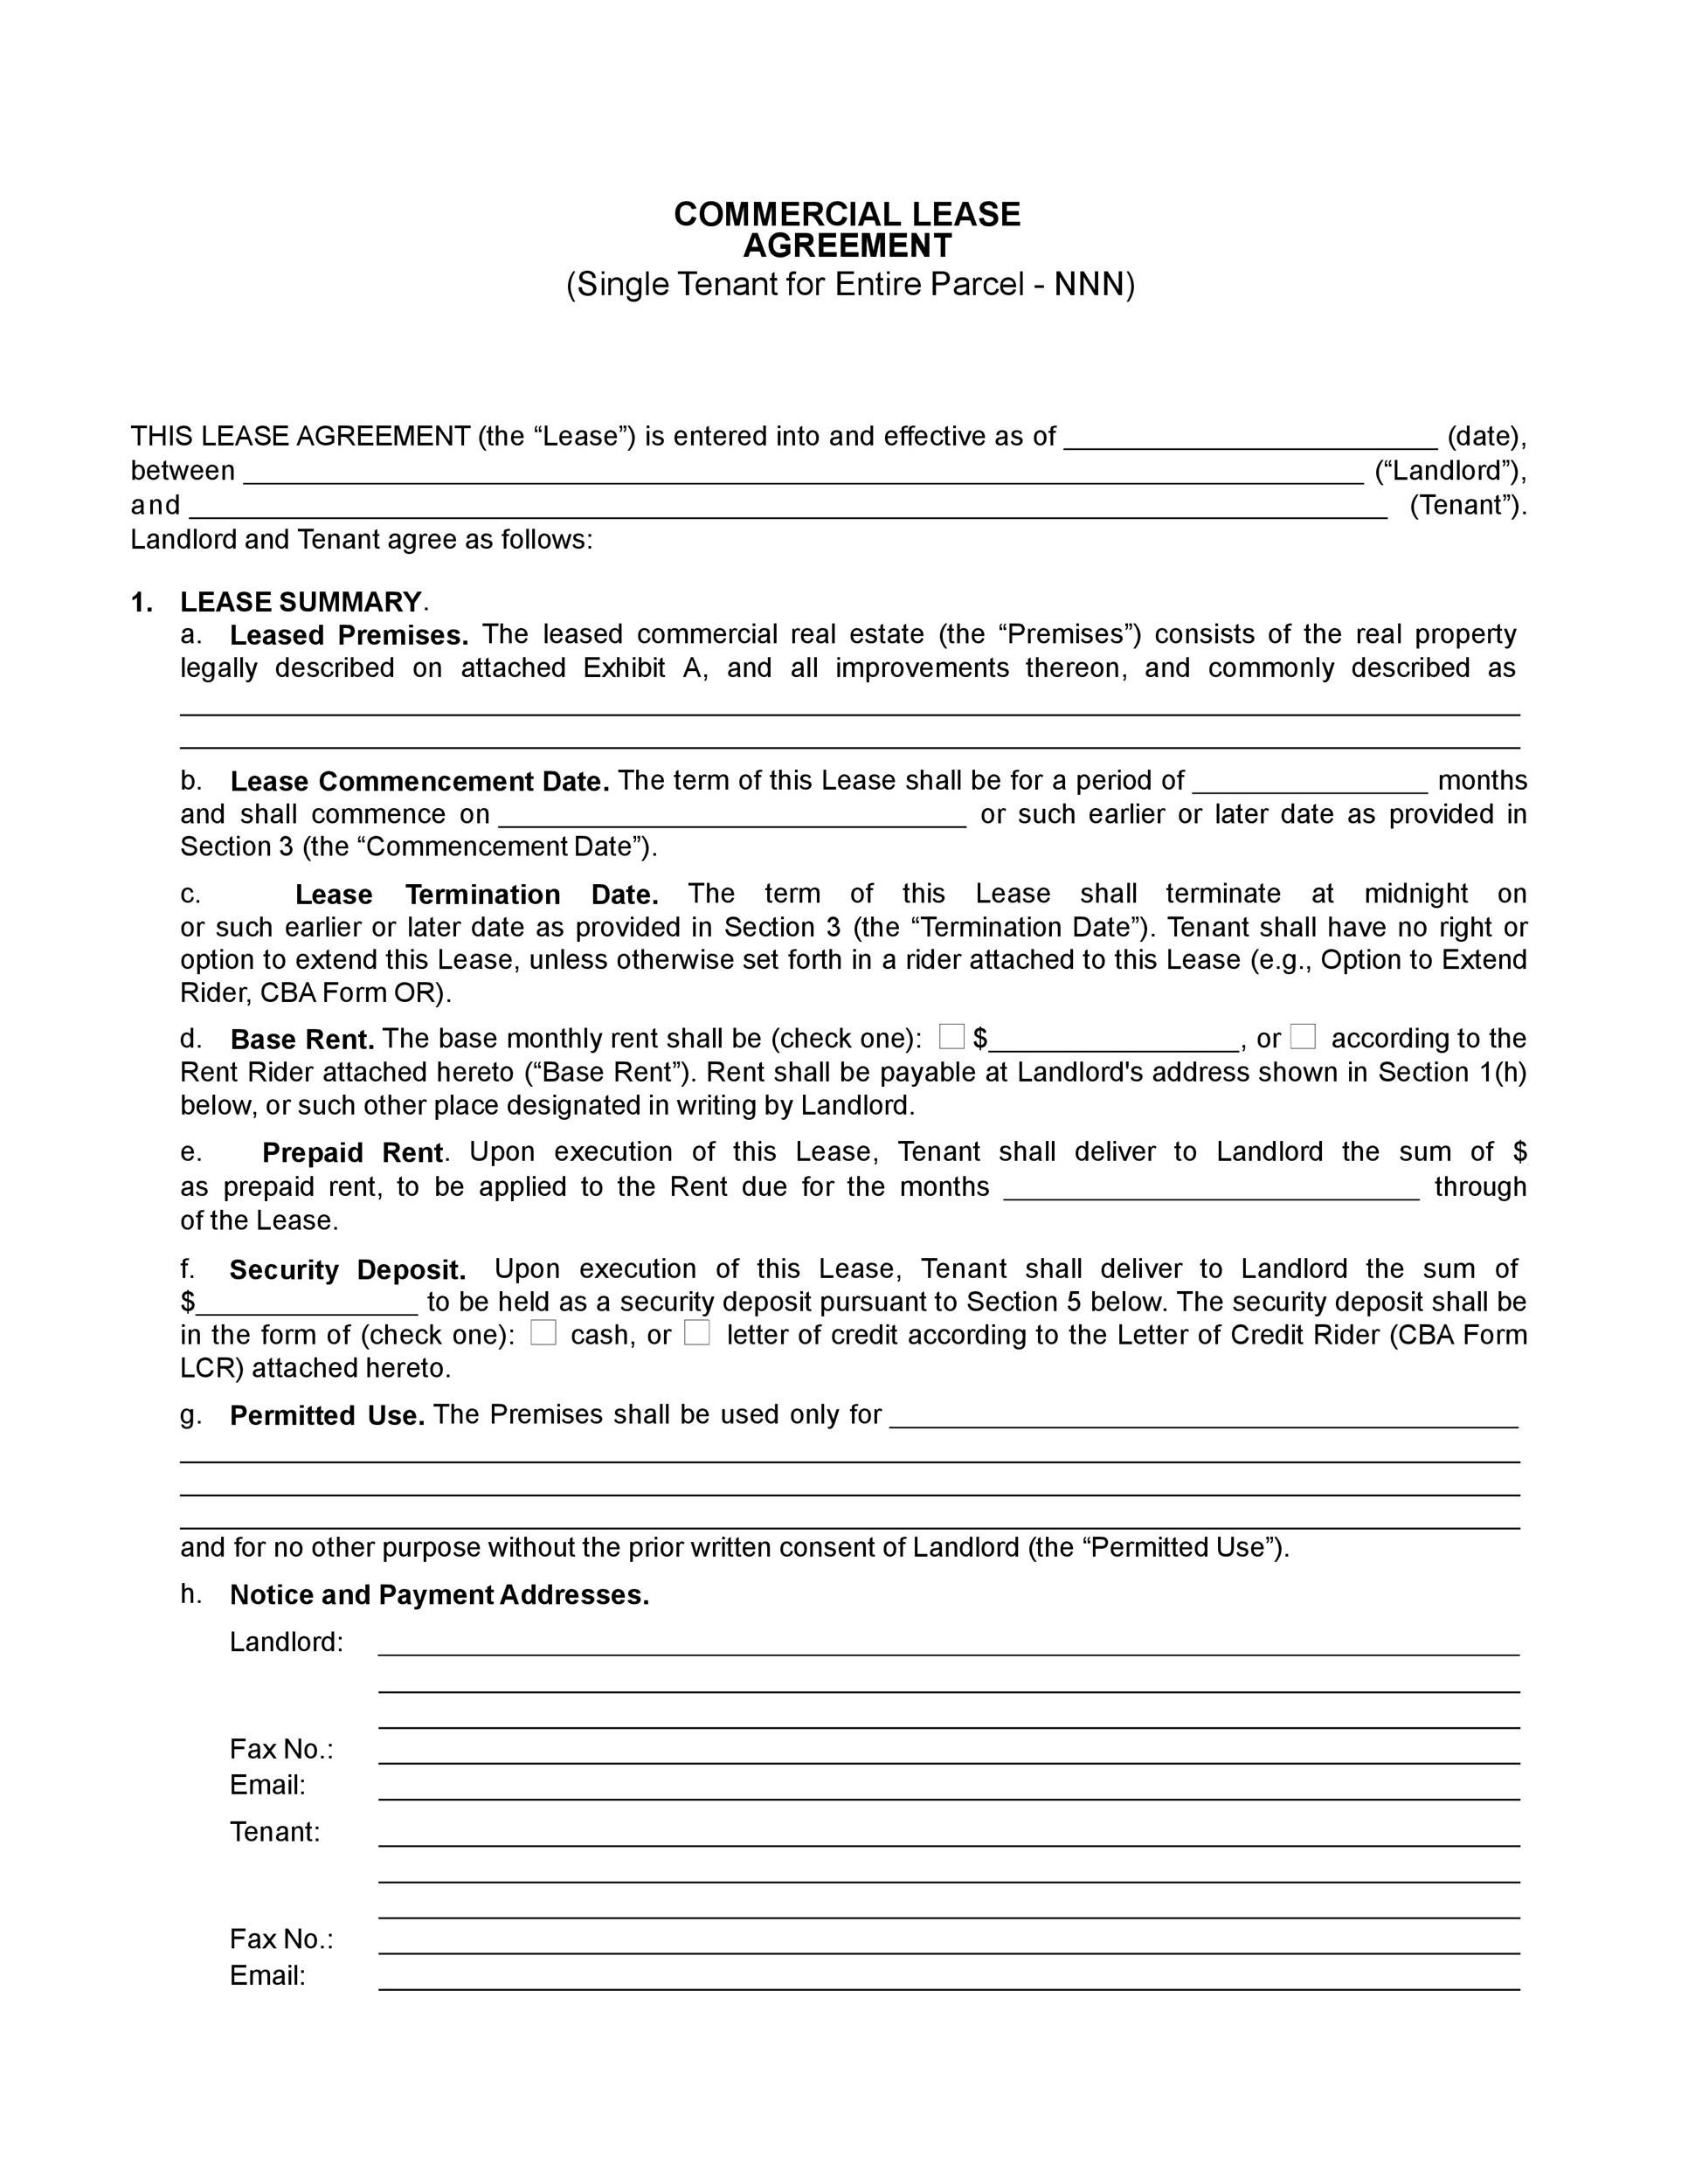 commercial lease agreement template 14. Resume Example. Resume CV Cover Letter